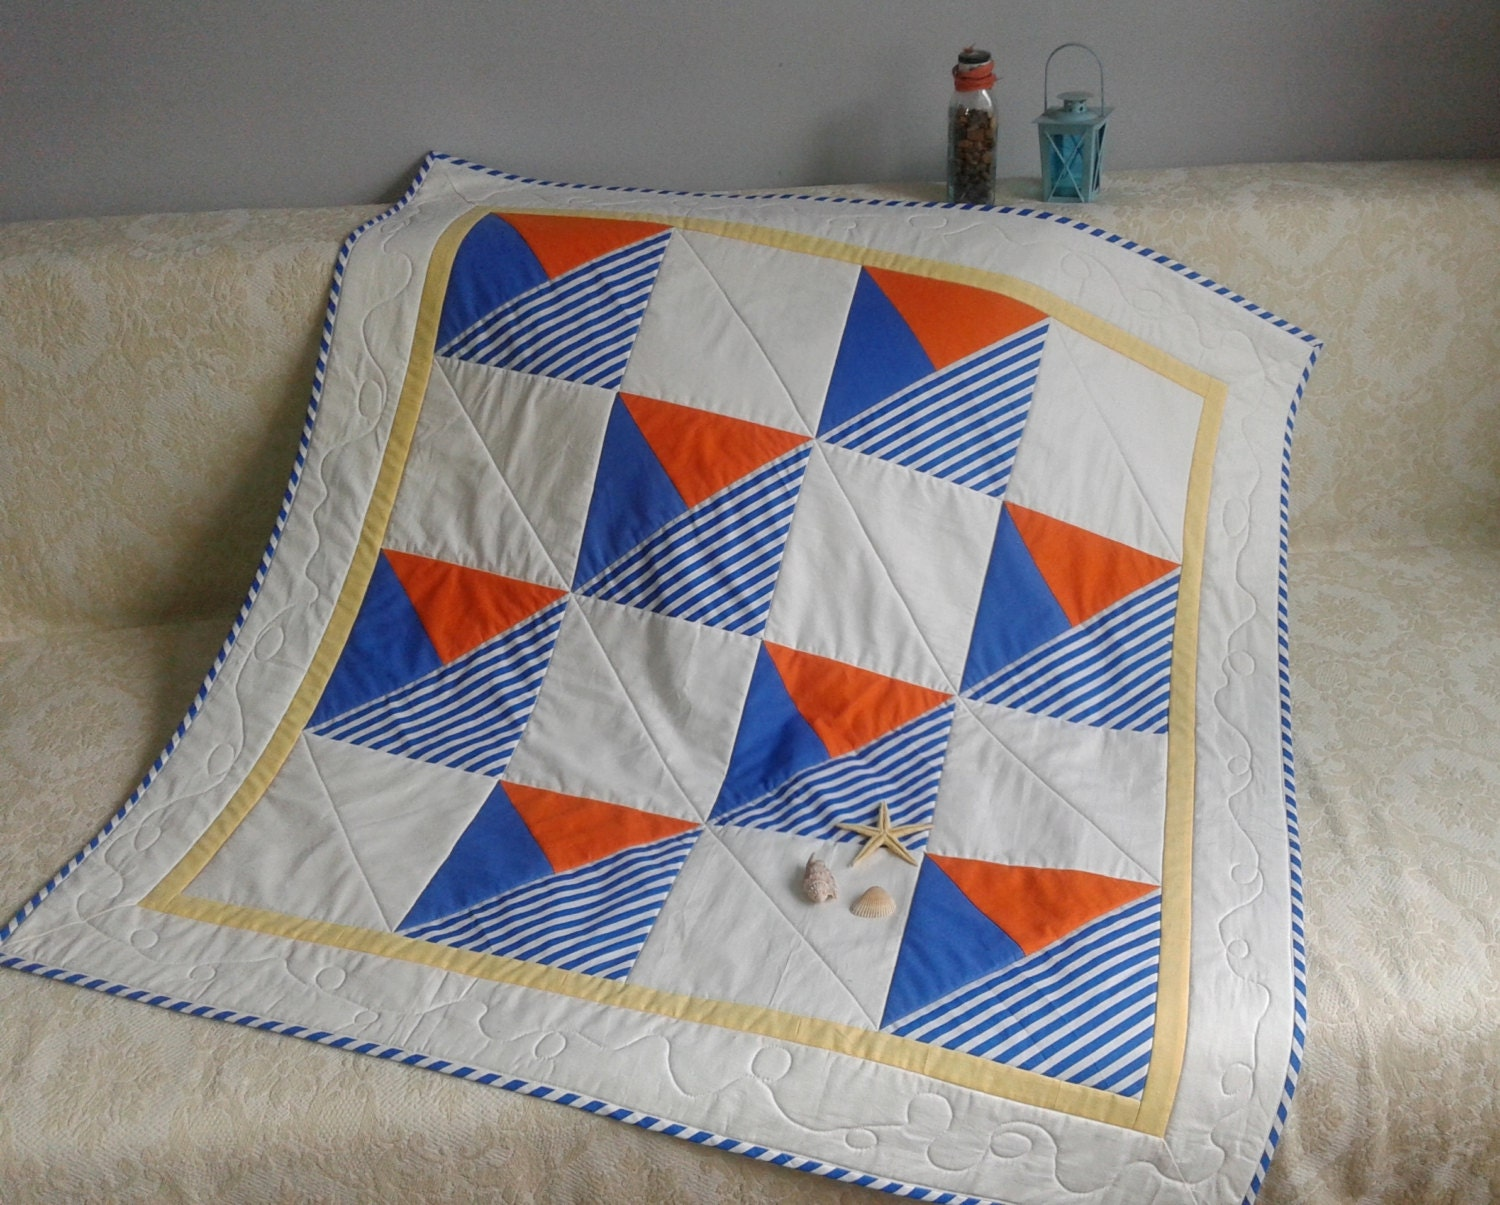 Quilt Patterns Using Stripe Fabric : Summer Breeze quilt pattern boats striped fabric mitered